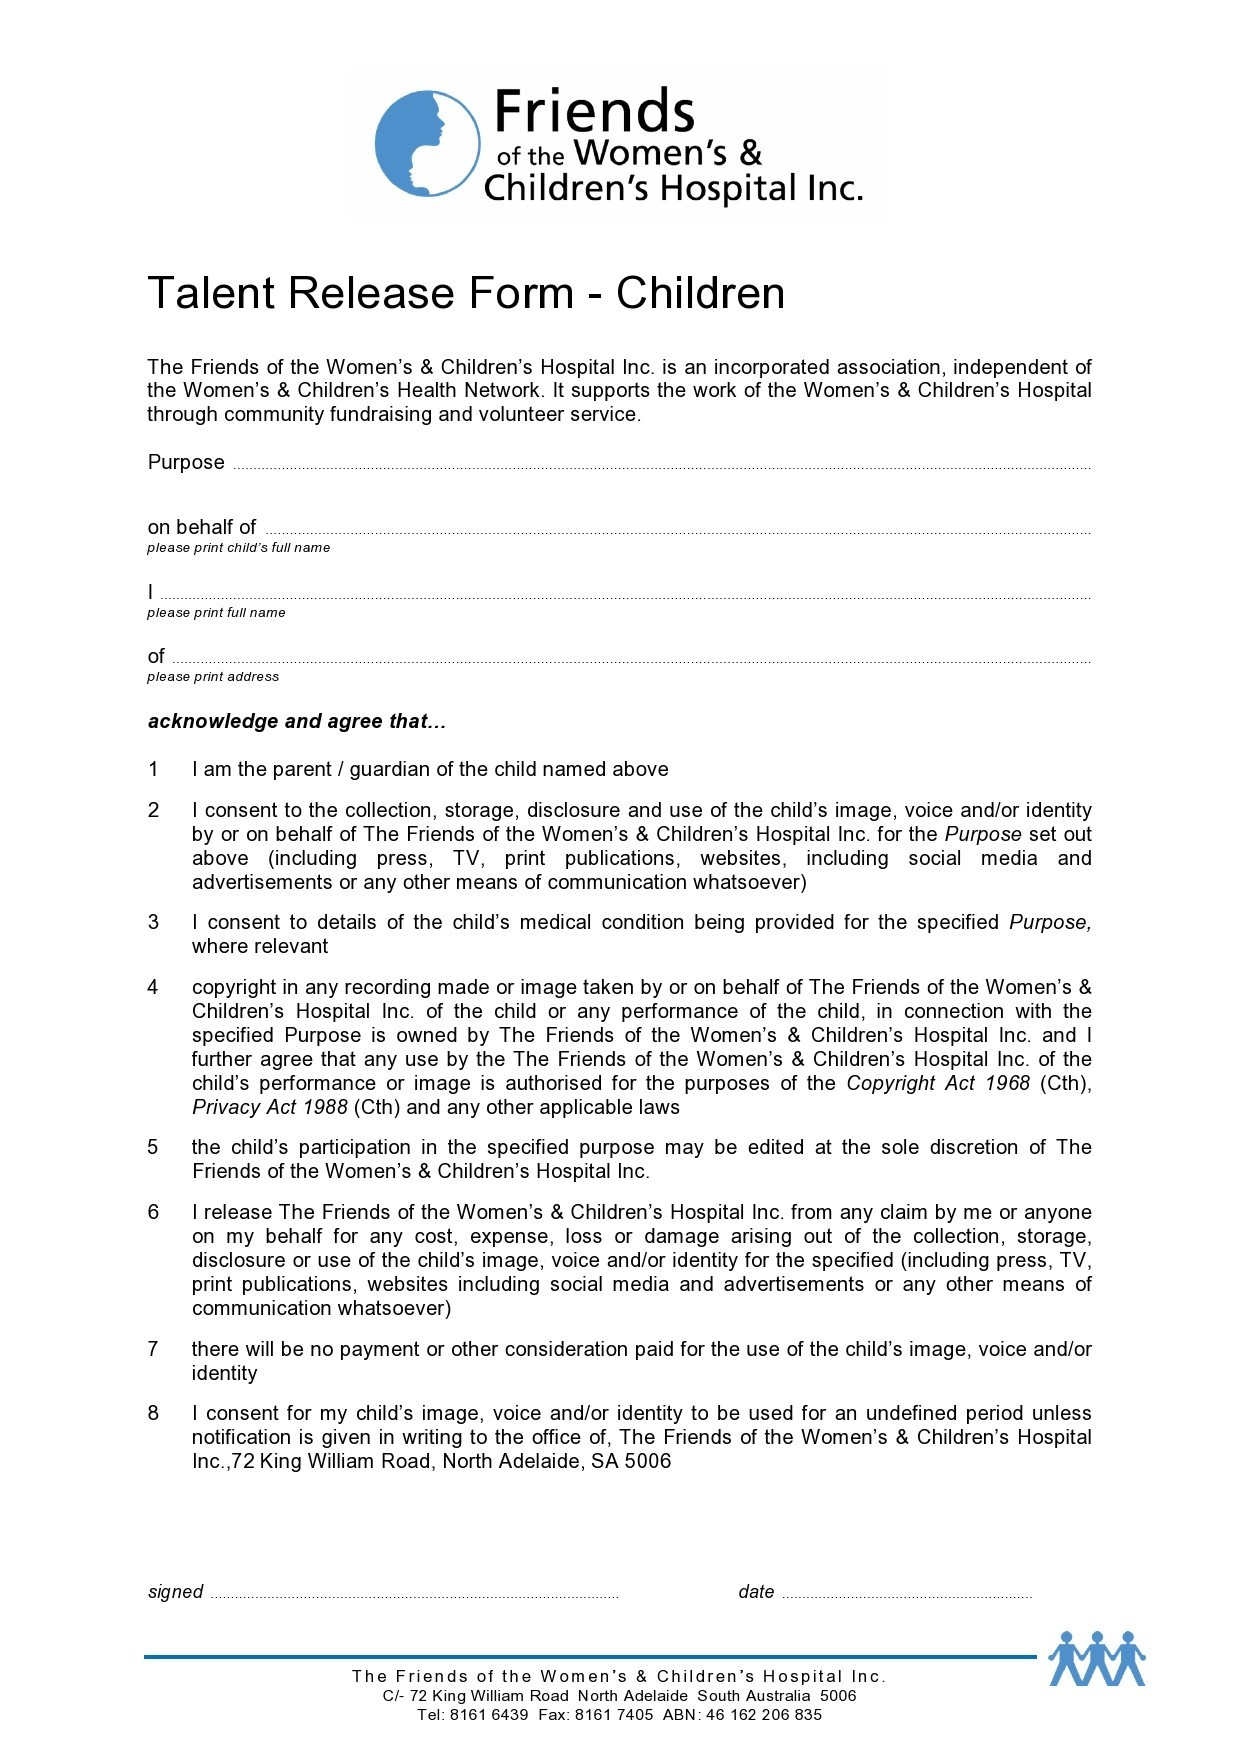 Free talent release form 06